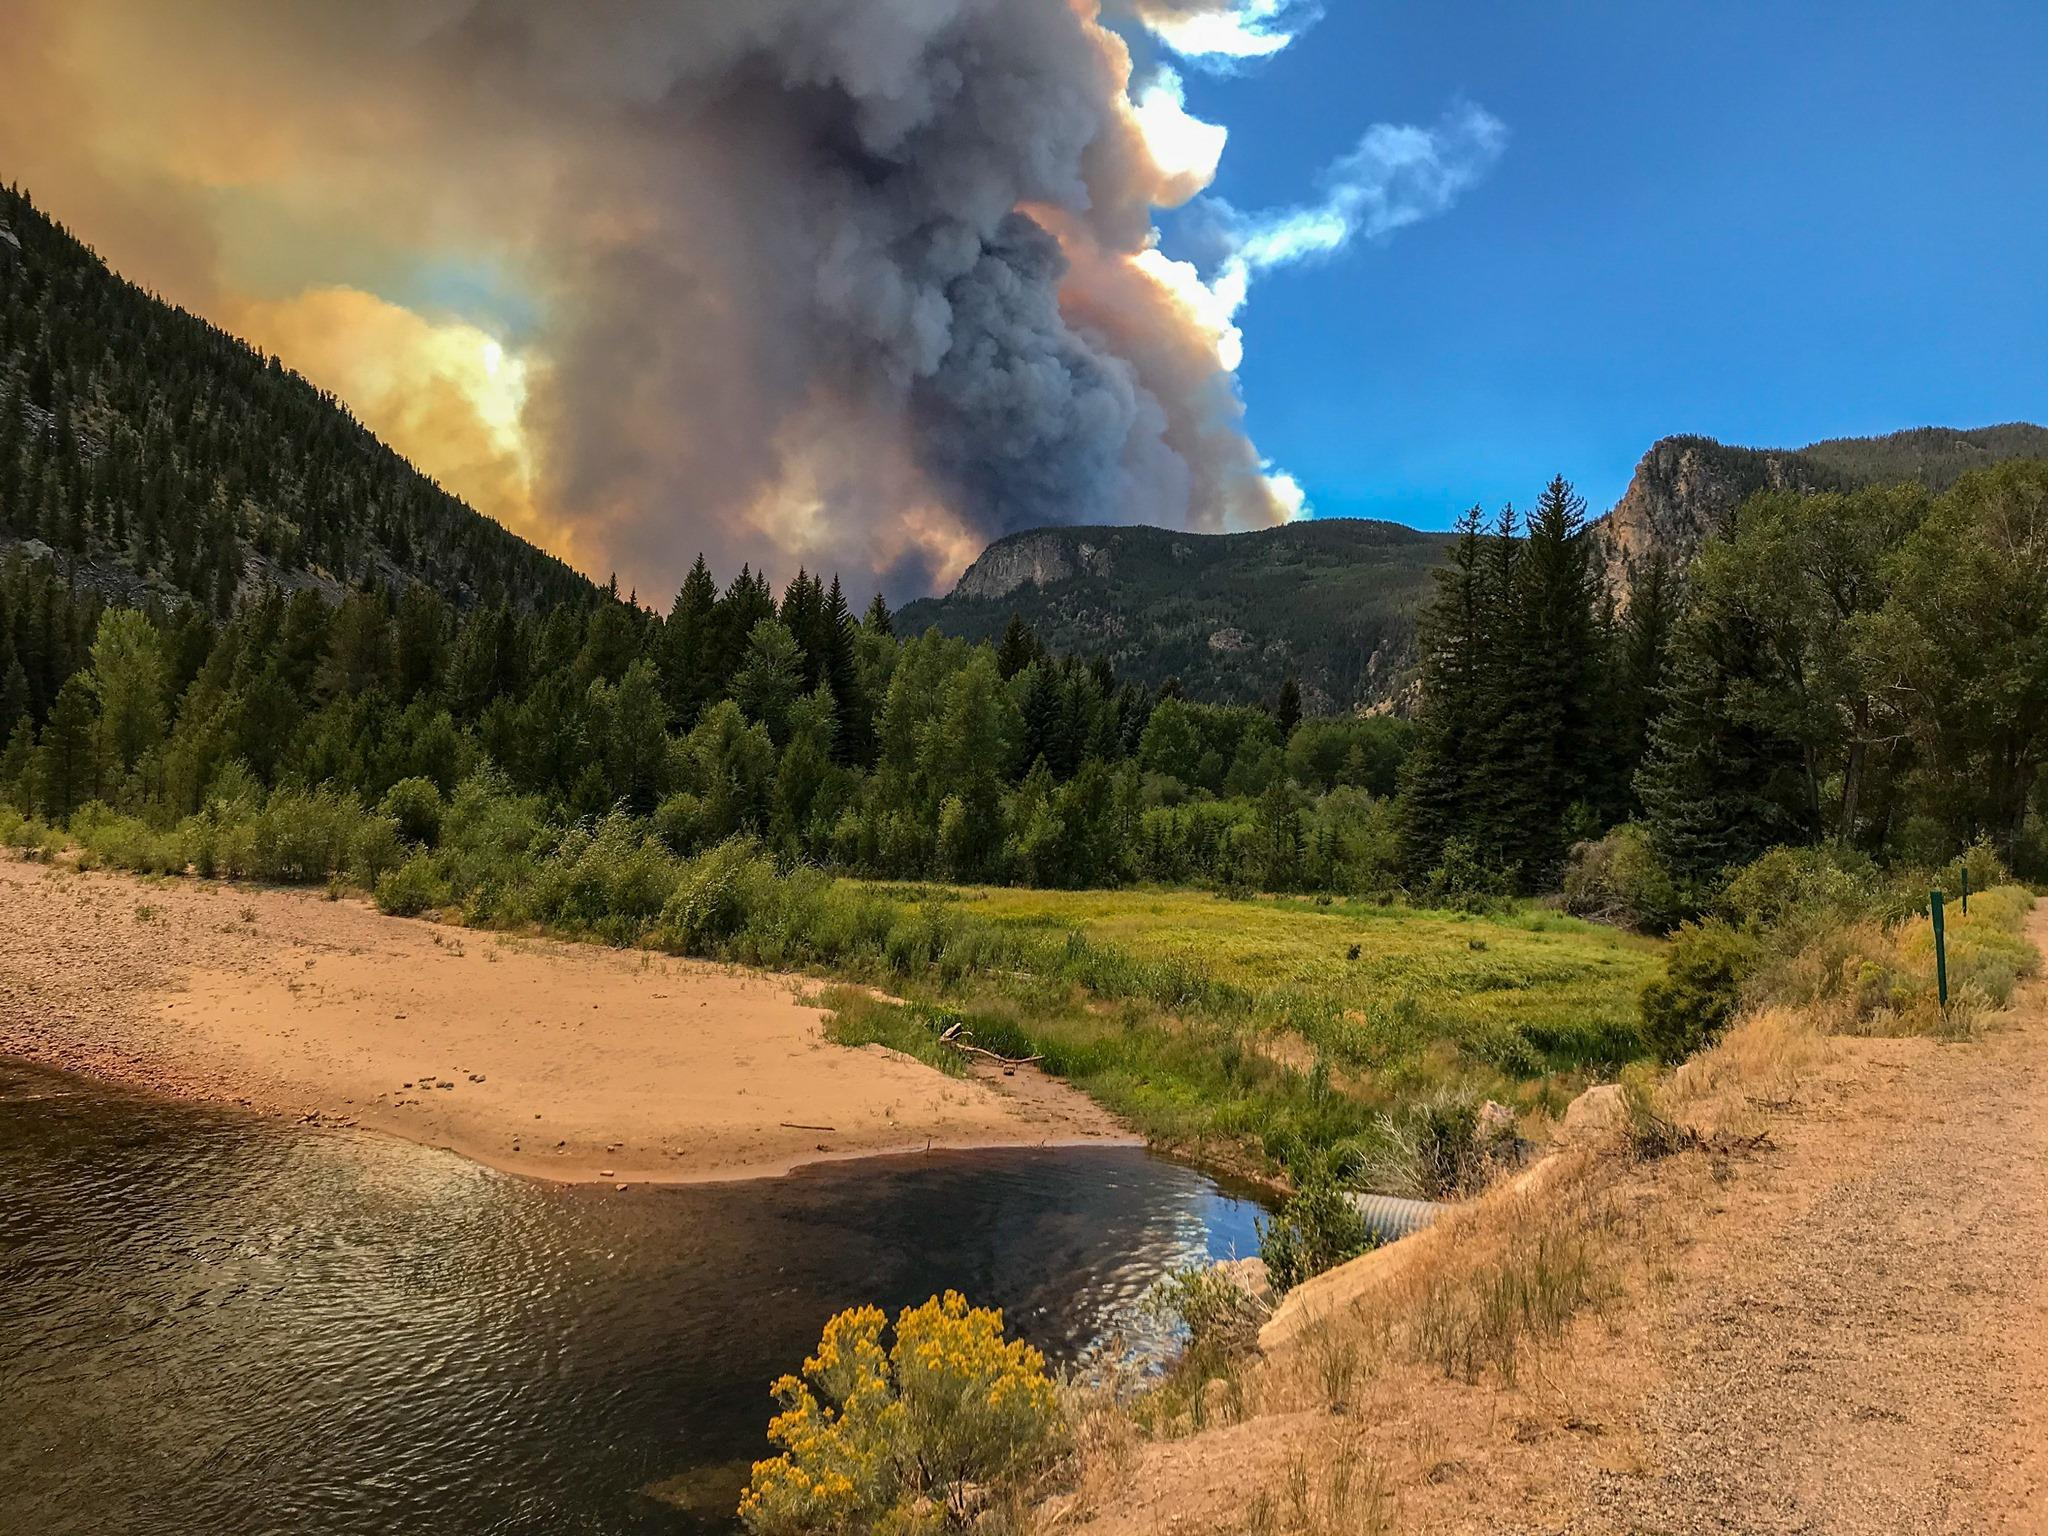 For The West's Drinking Water, Wildfire Concerns Linger Long After Smoke Clears